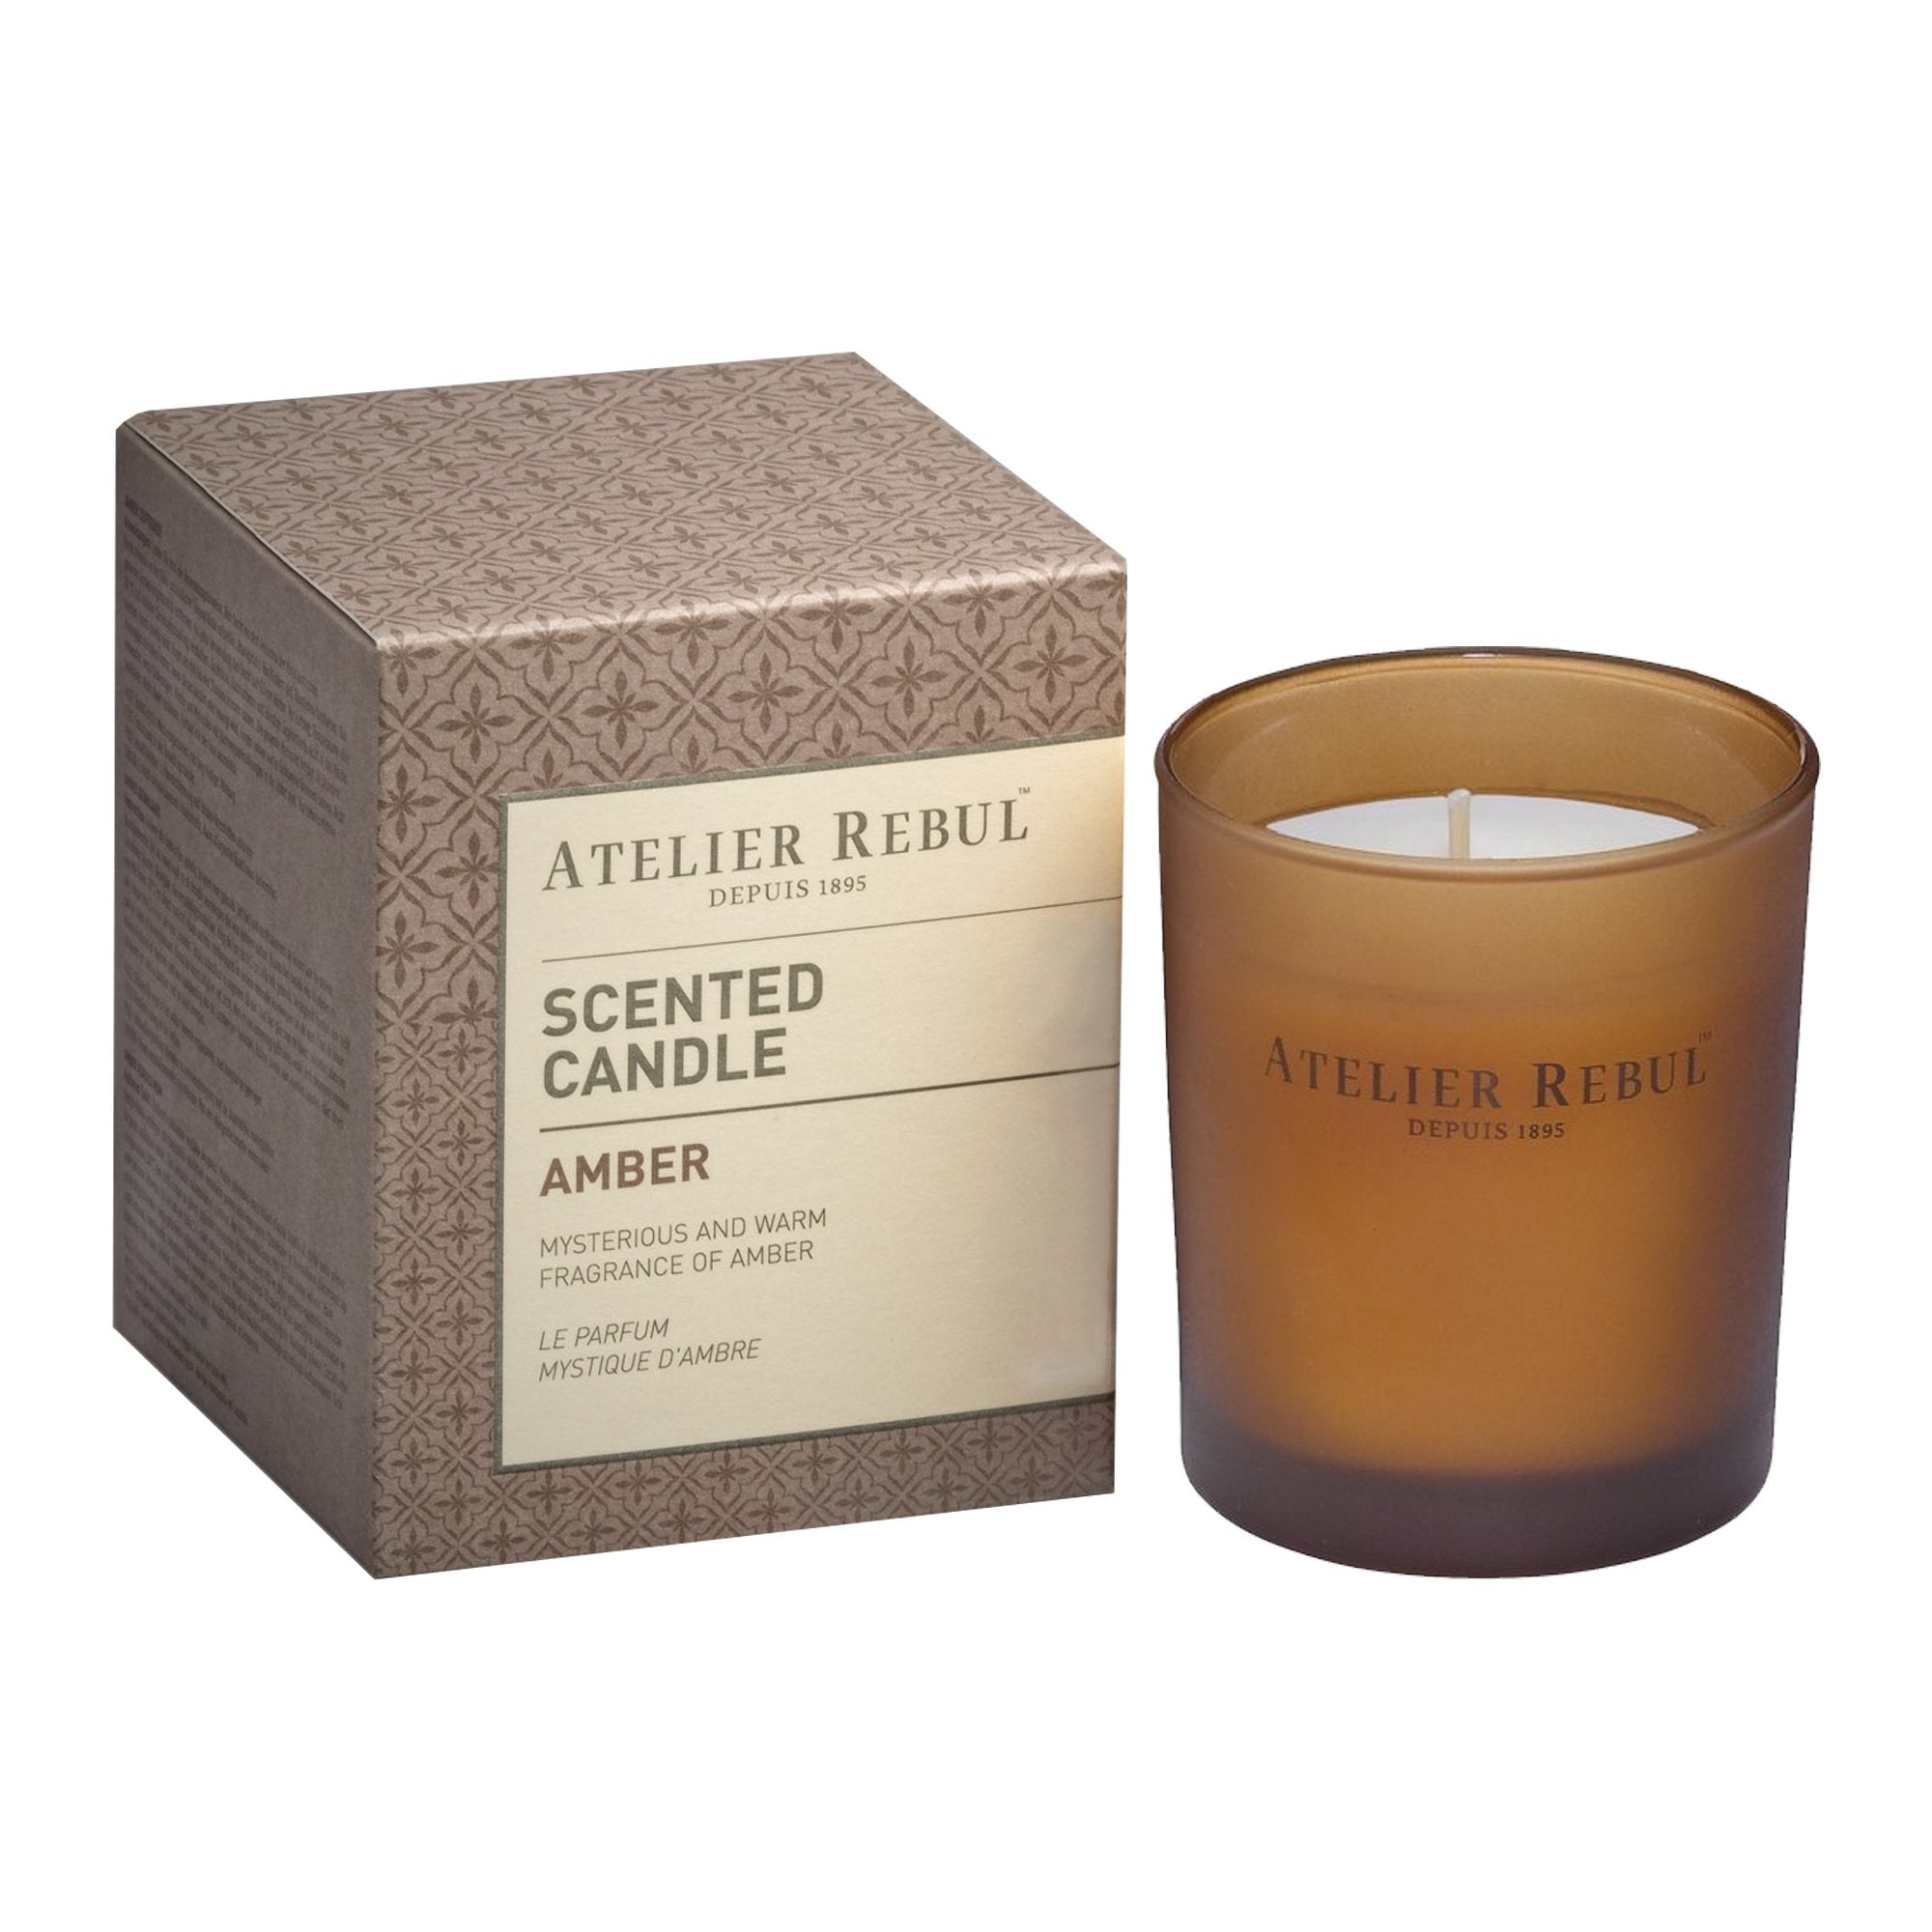 Amber Scented Candle 140g | Atelier Rebul Webshop